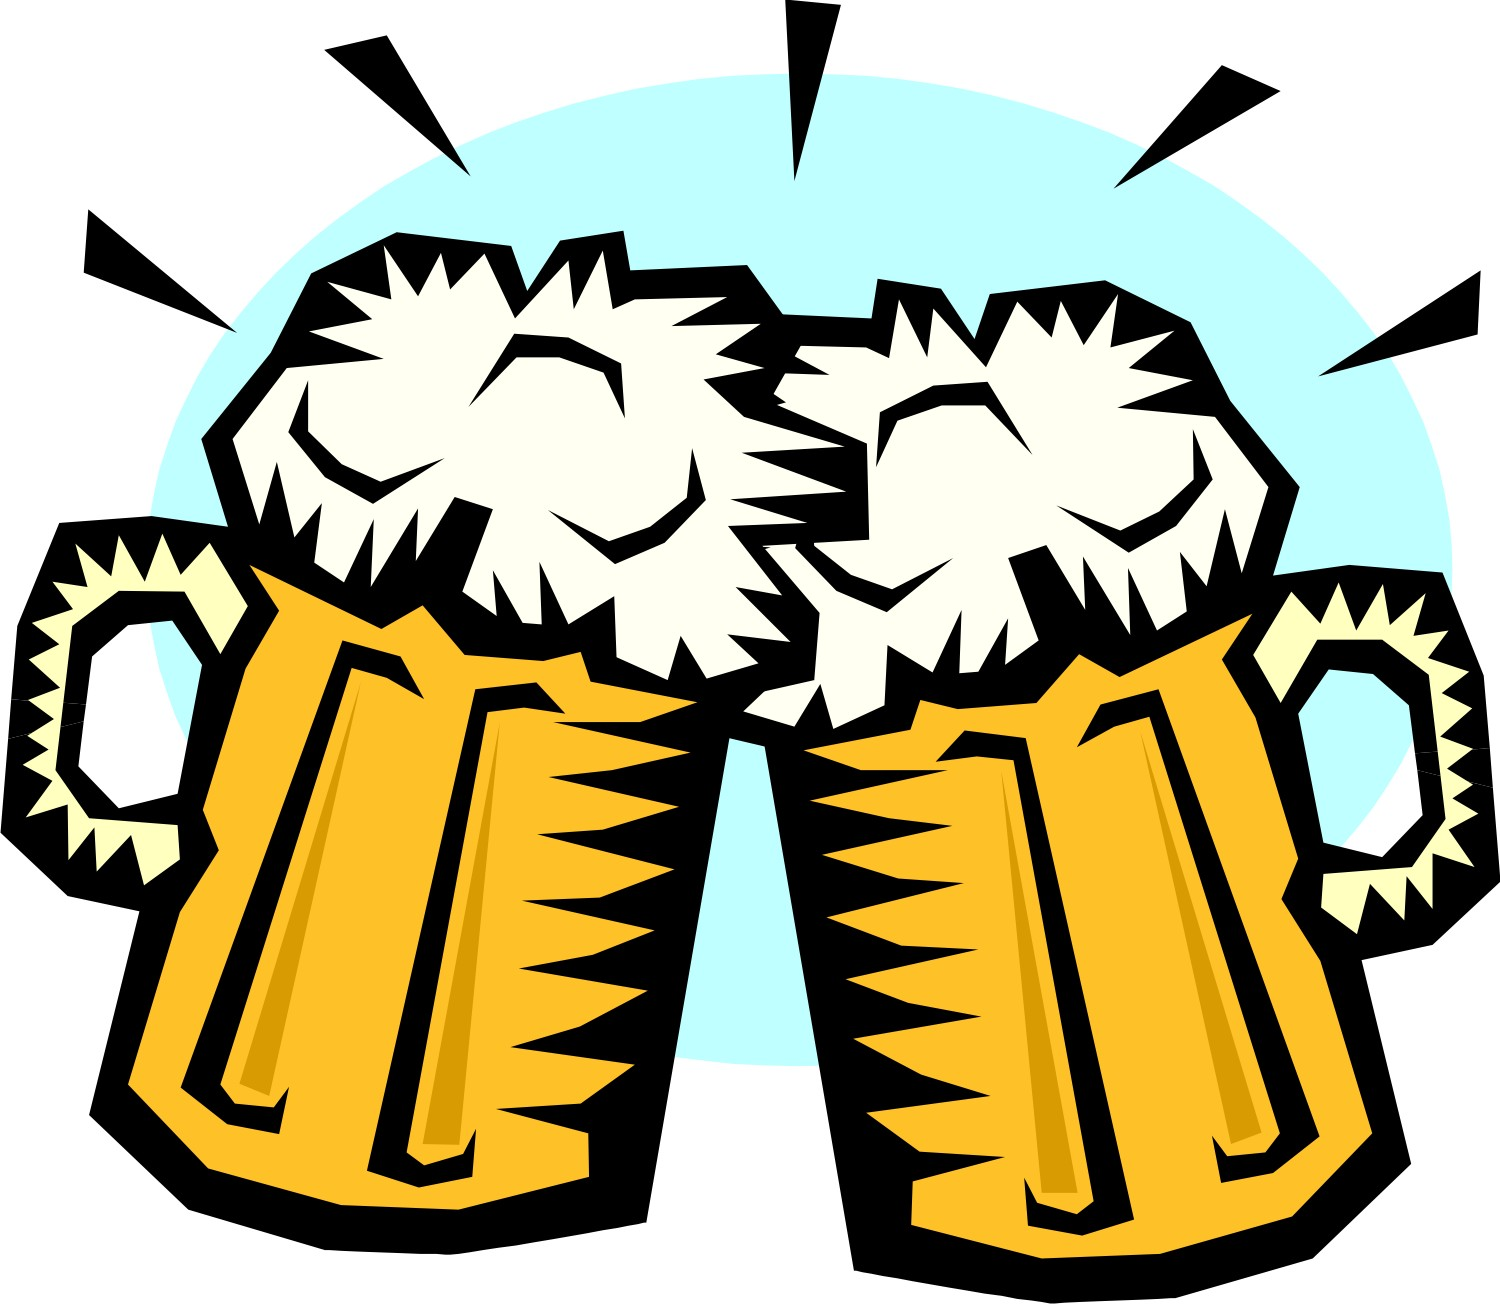 Beer Mug Cheers - ClipArt Best